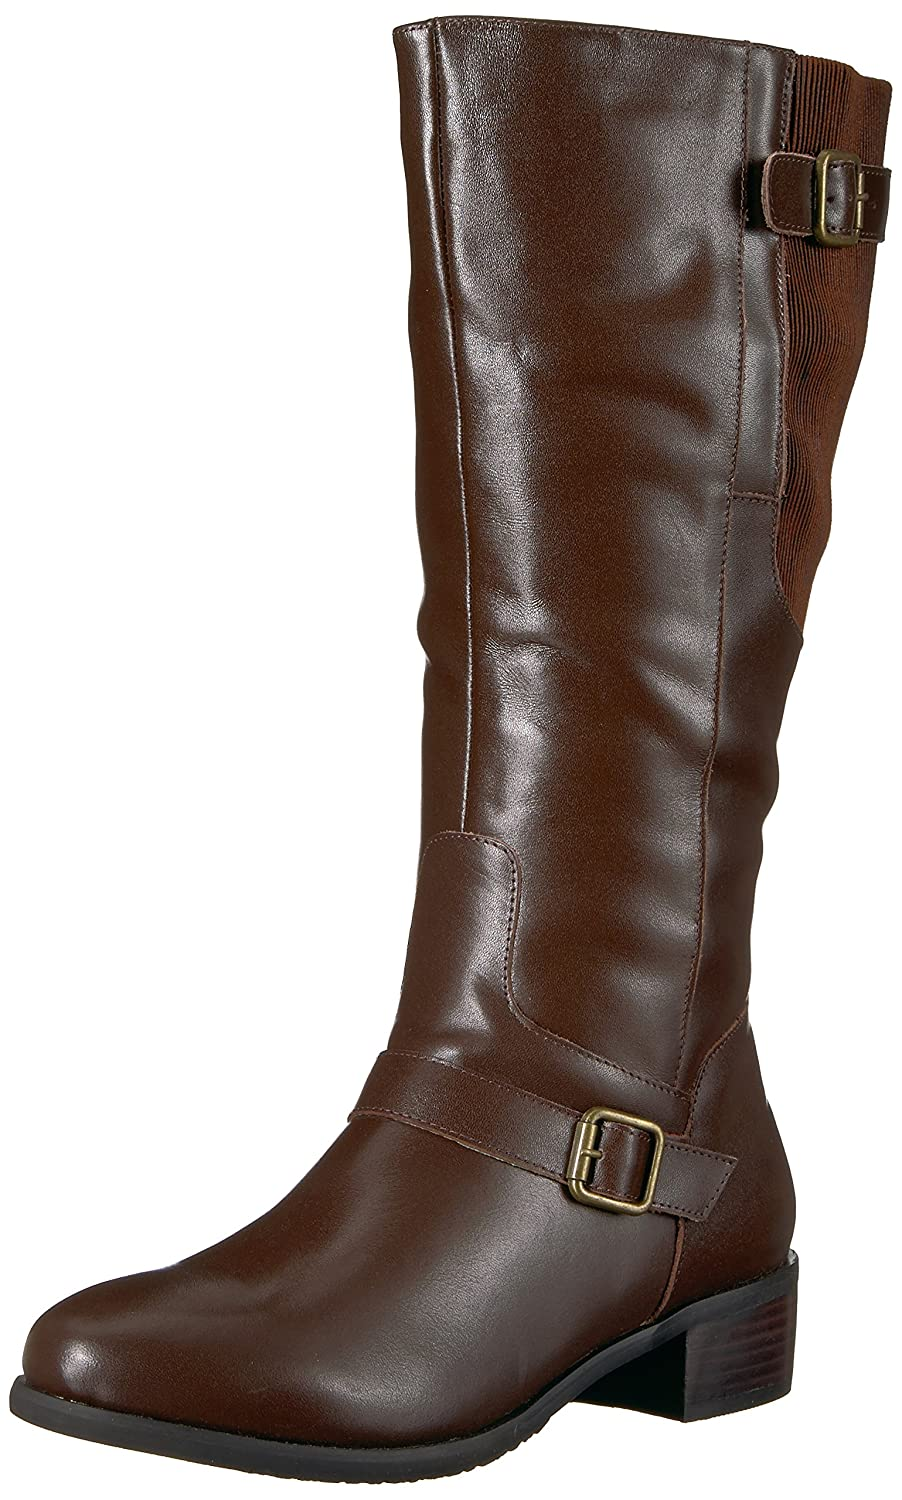 Propet Women's Teagan Riding Boot B06XRN4VFG 11 2E US|Brown